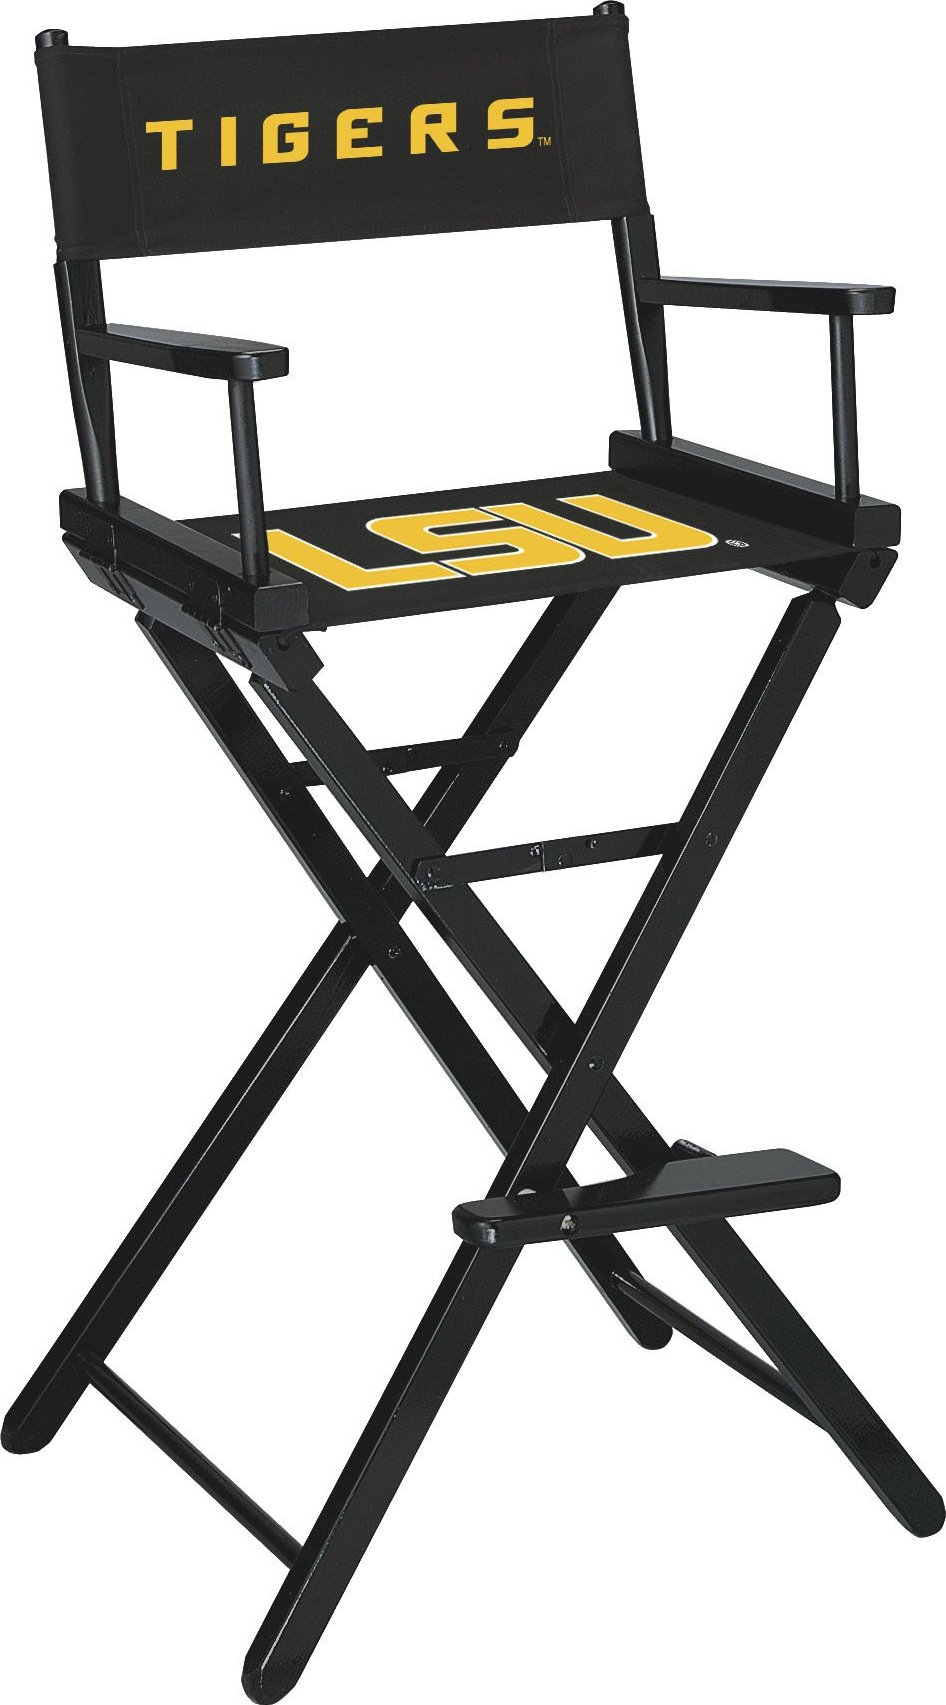 Imperial Officially Licensed NCAA Merchandise: Directors Chair (Tall, Bar Height), LSU Tigers